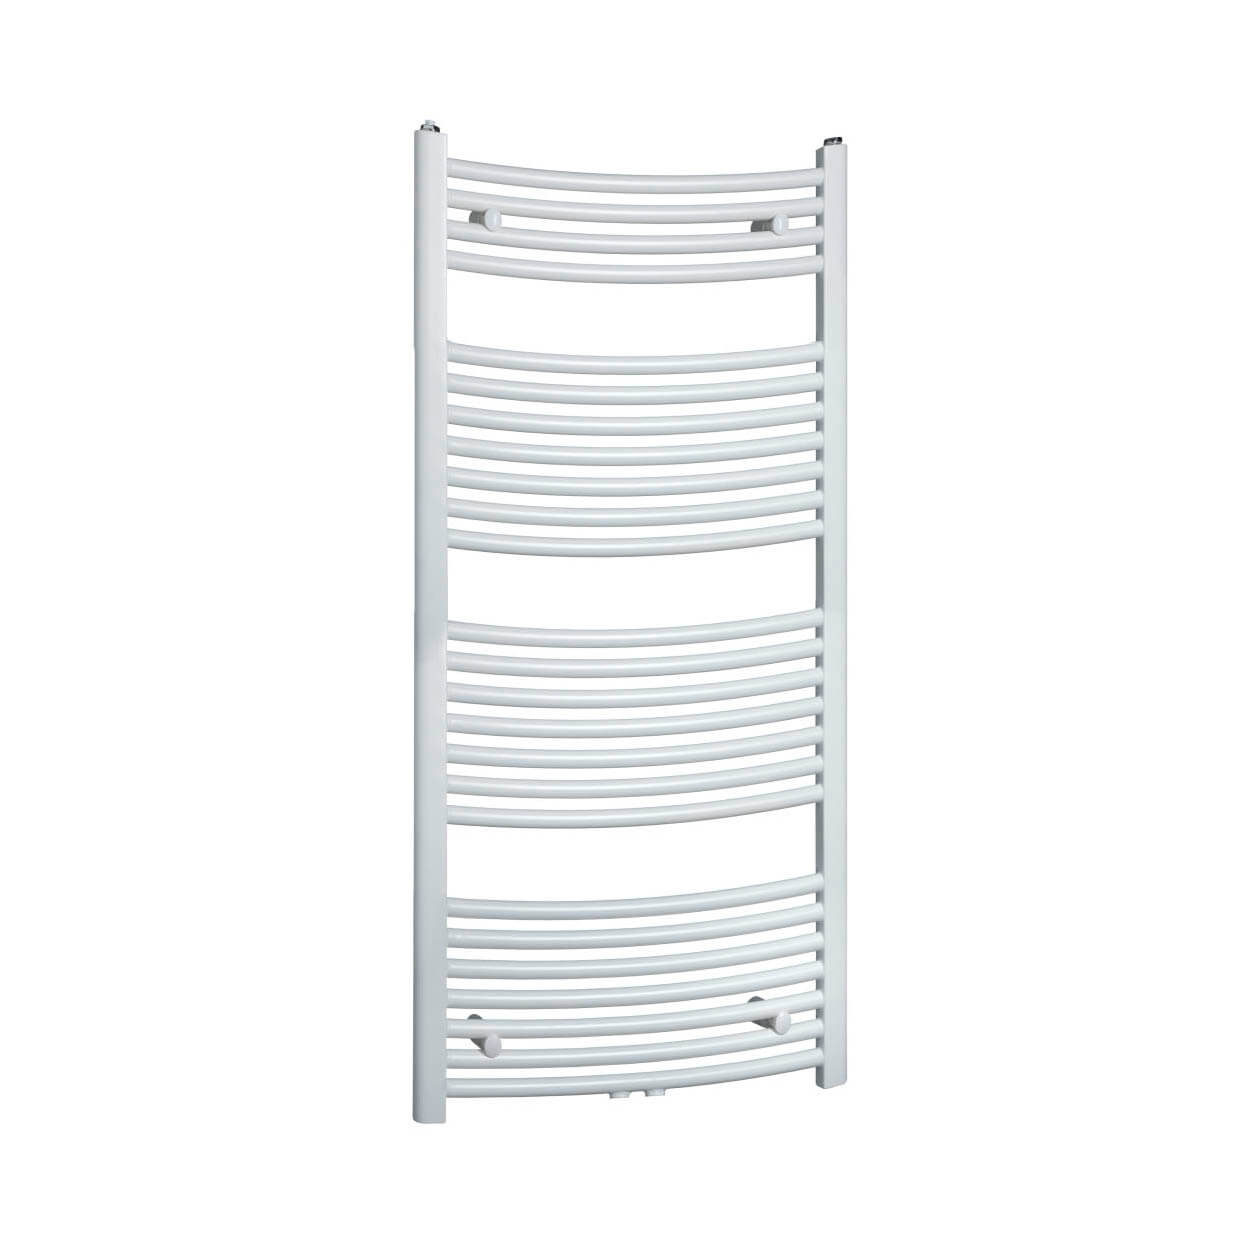 Aansluiten Design Radiator Badkamer Best Design Radiator One Gebogen Model 1200x600 Mm